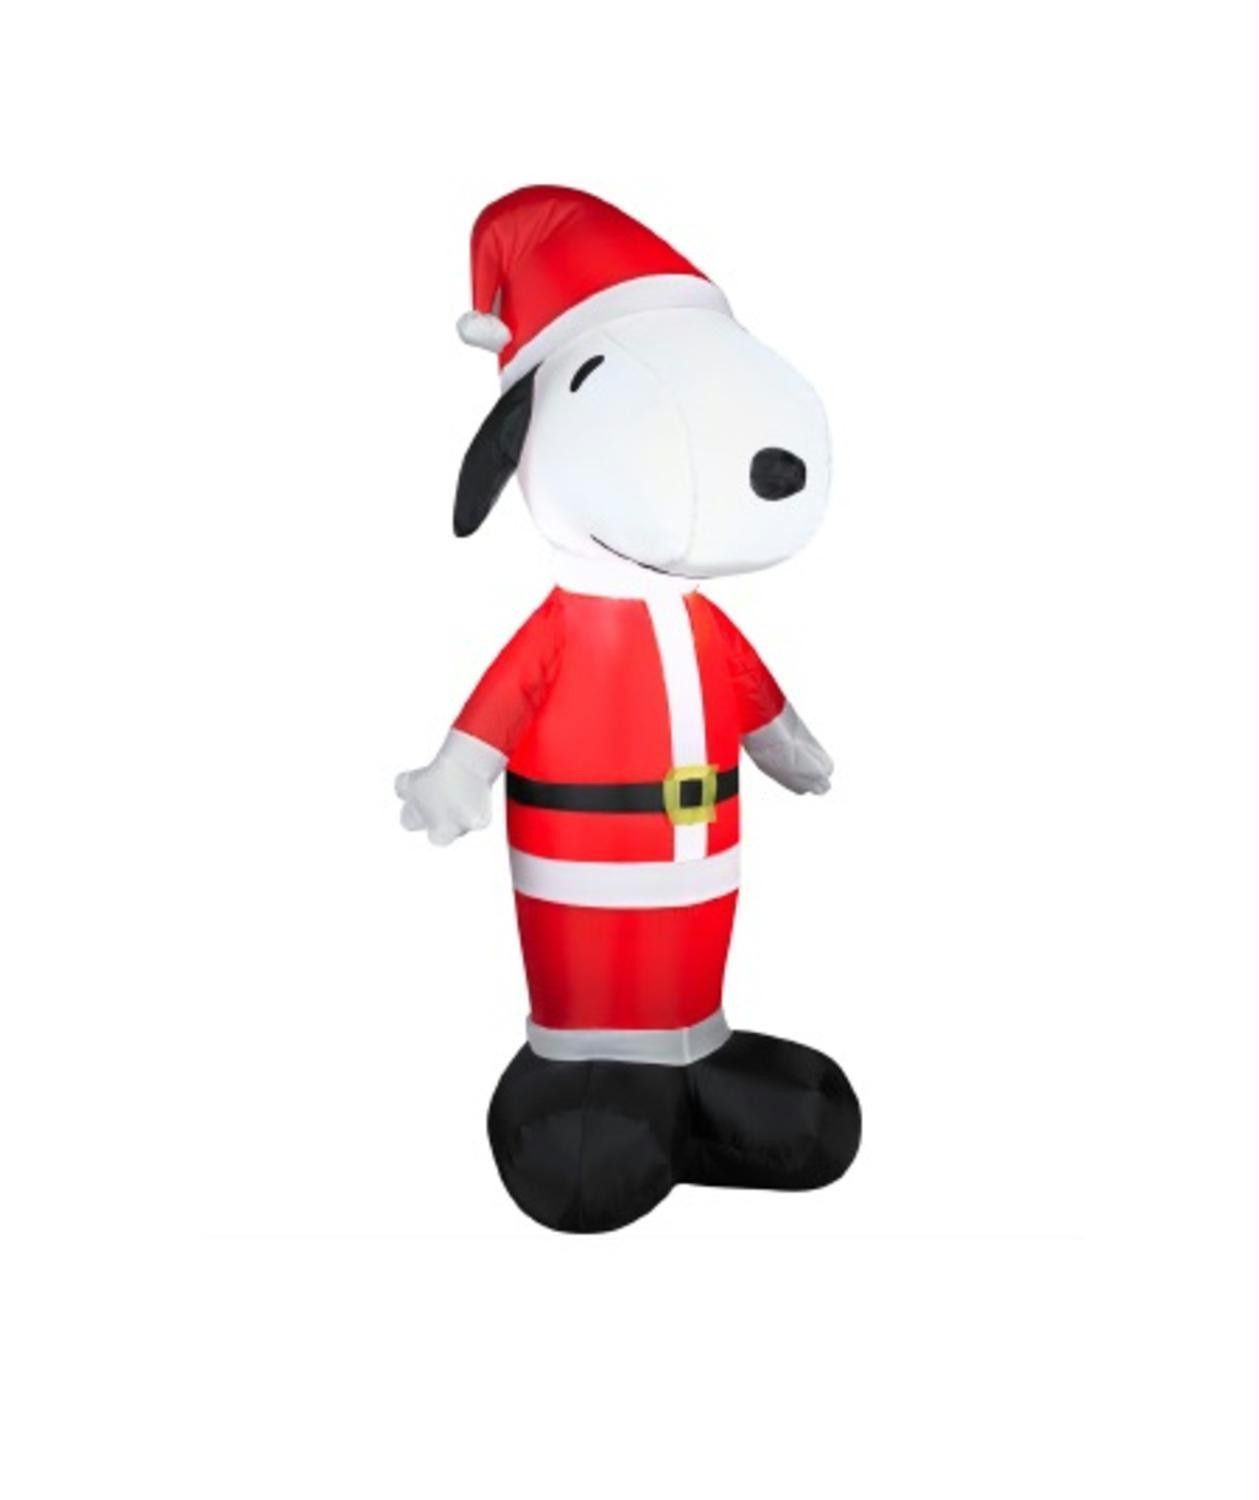 35 inflatable peanuts led lighted snoopy santa claus christmas yard art decoration - Snoopy Blow Up Christmas Decorations